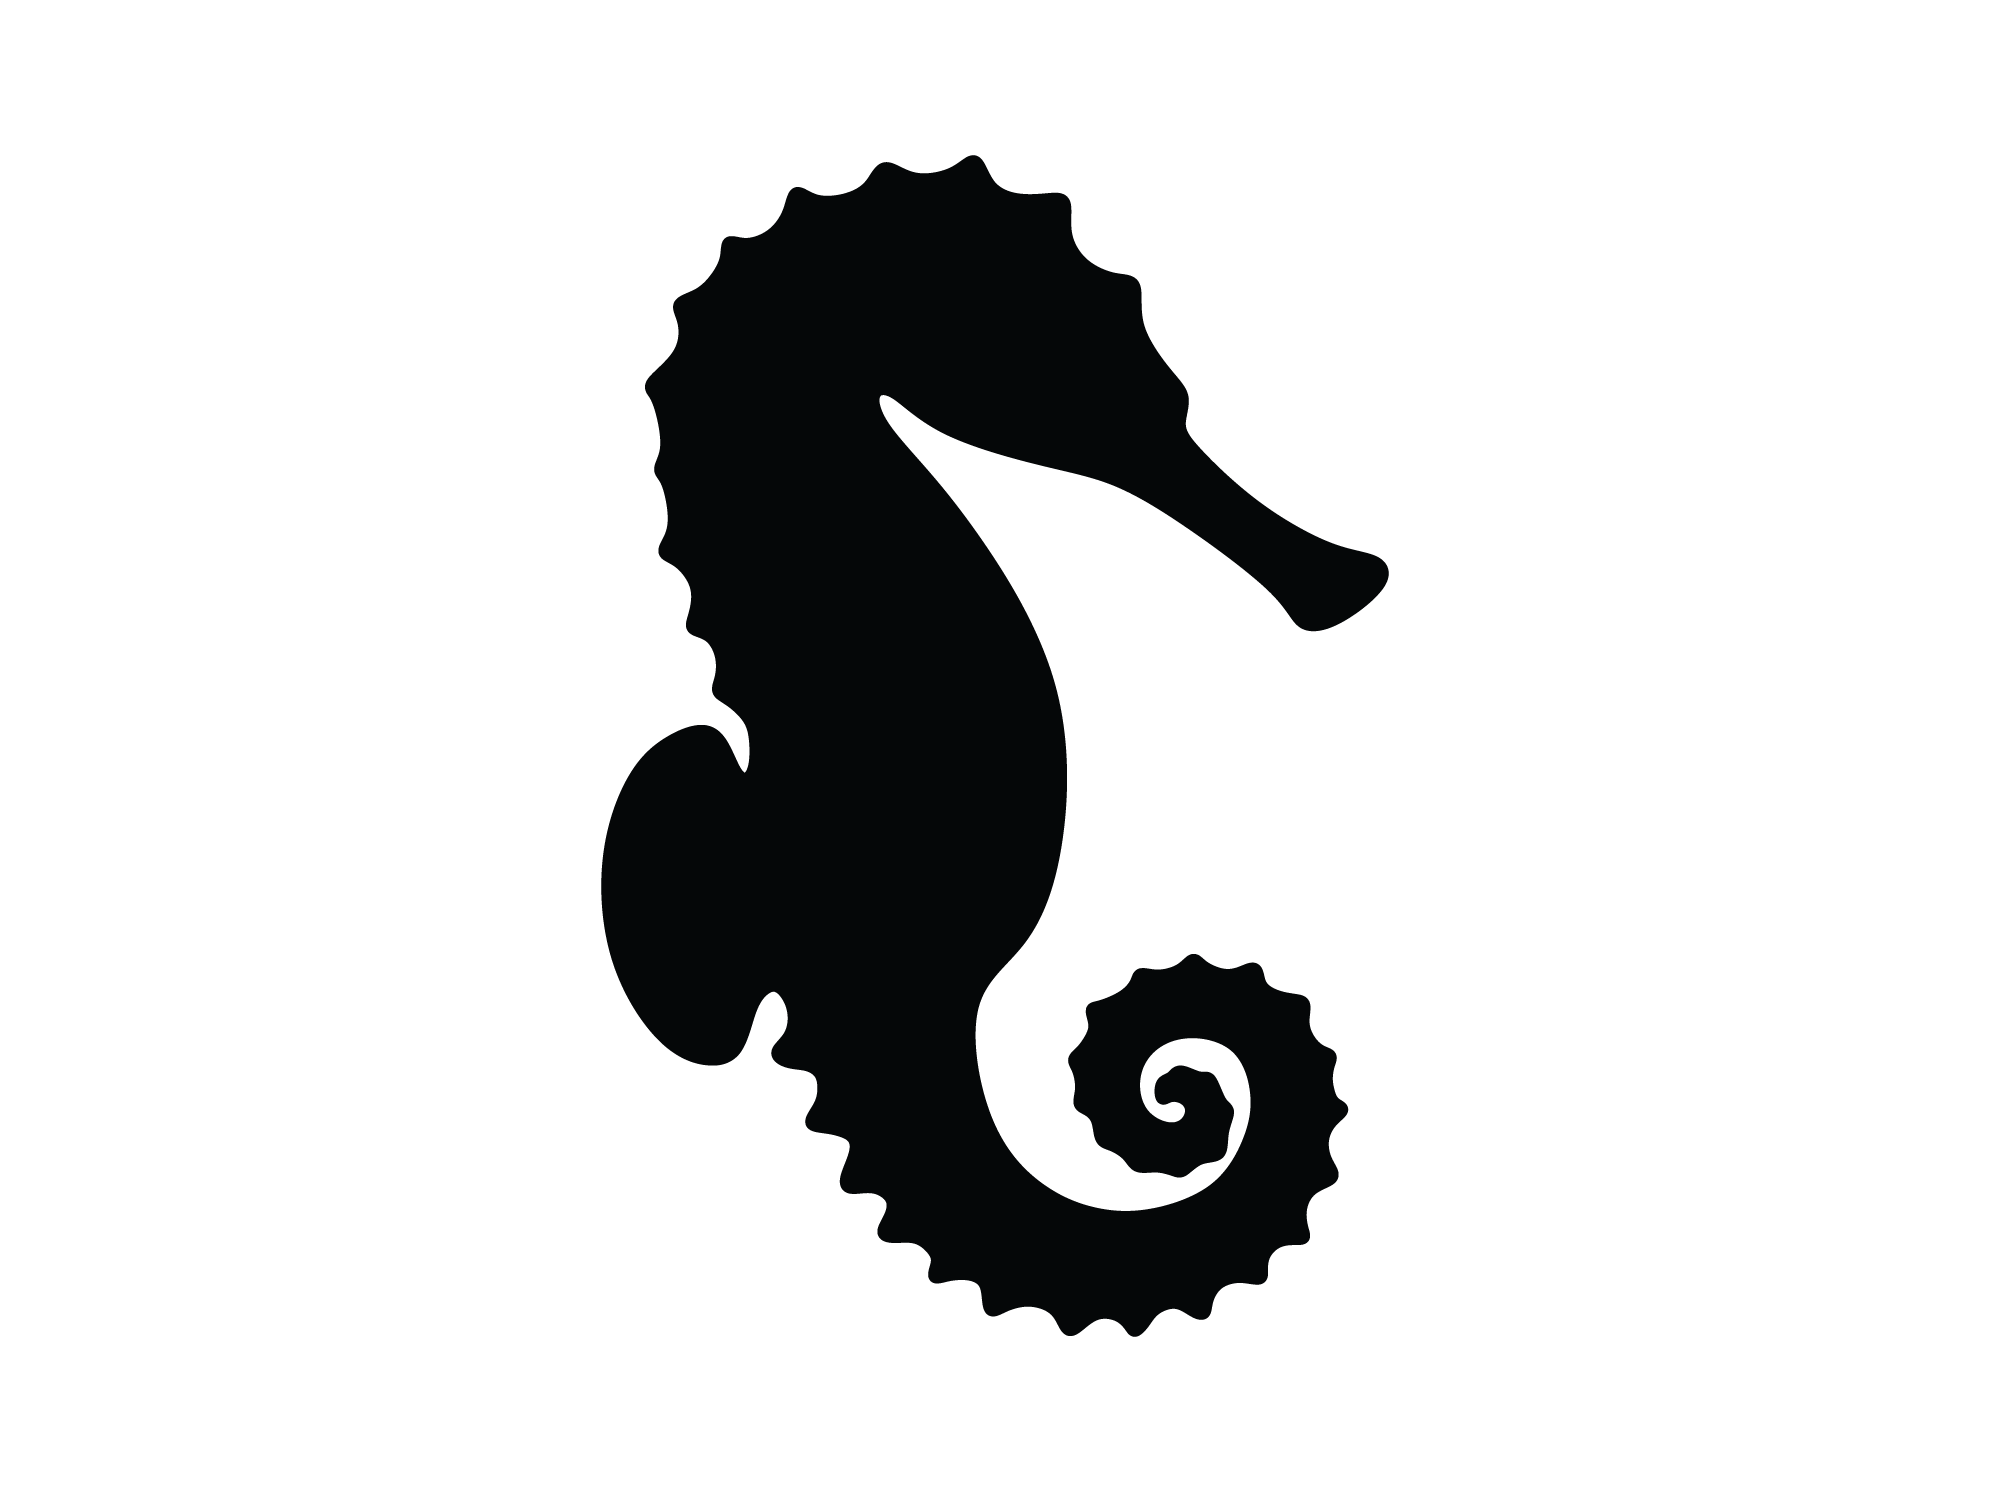 seahorse-01.png